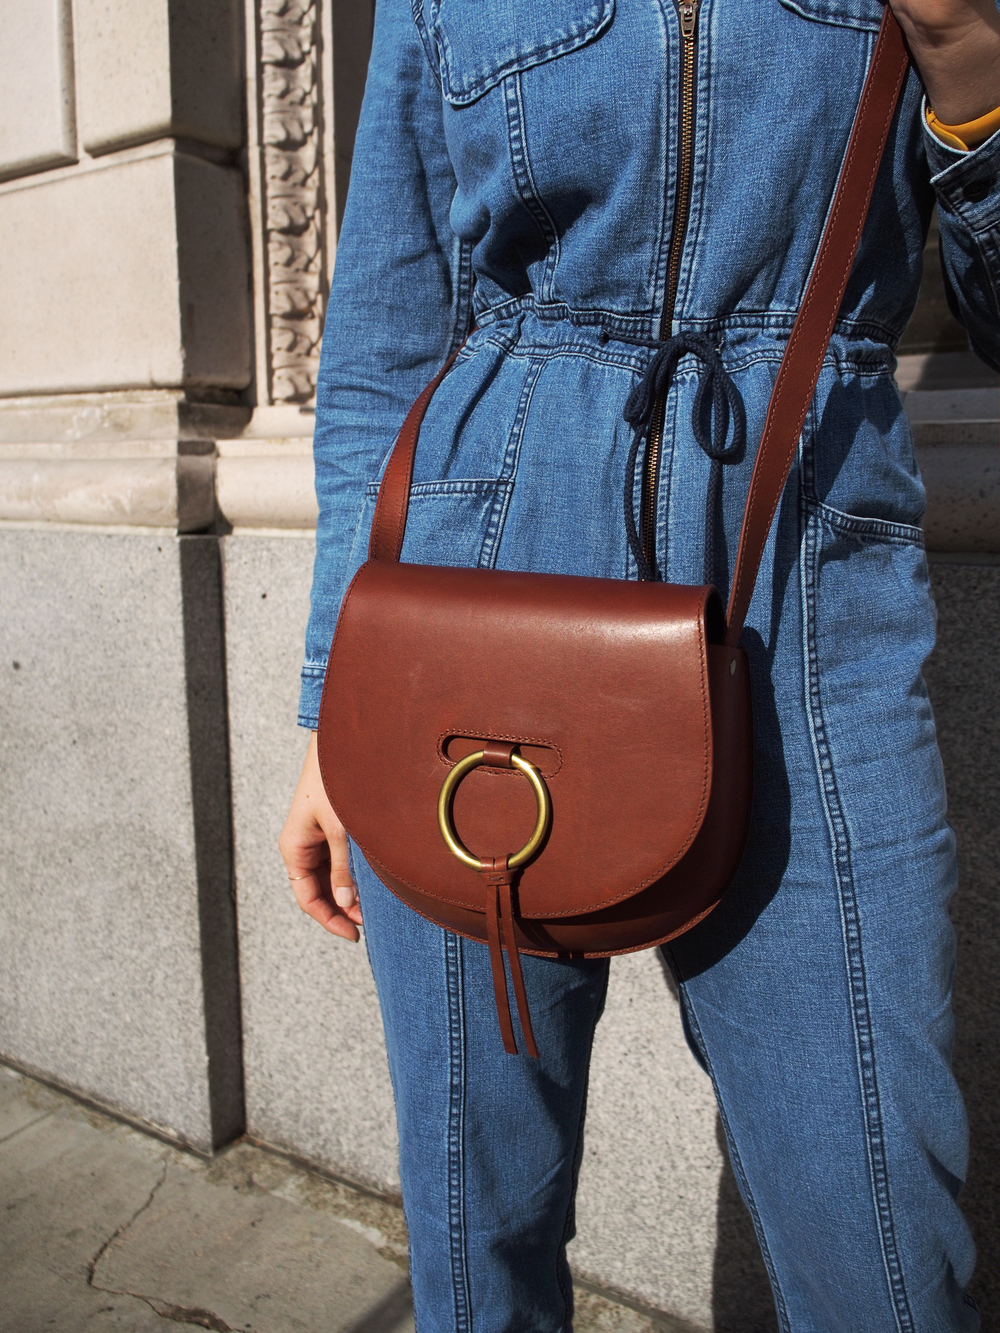 Madewell x Goop Denim Coverall Jumpsuit Madewell Leather Lisbon O-Ring Saddlebag Susi Studio Hey Simone Black Heel Denim Everyday Taylr Anne Street Style www.taylranne.com